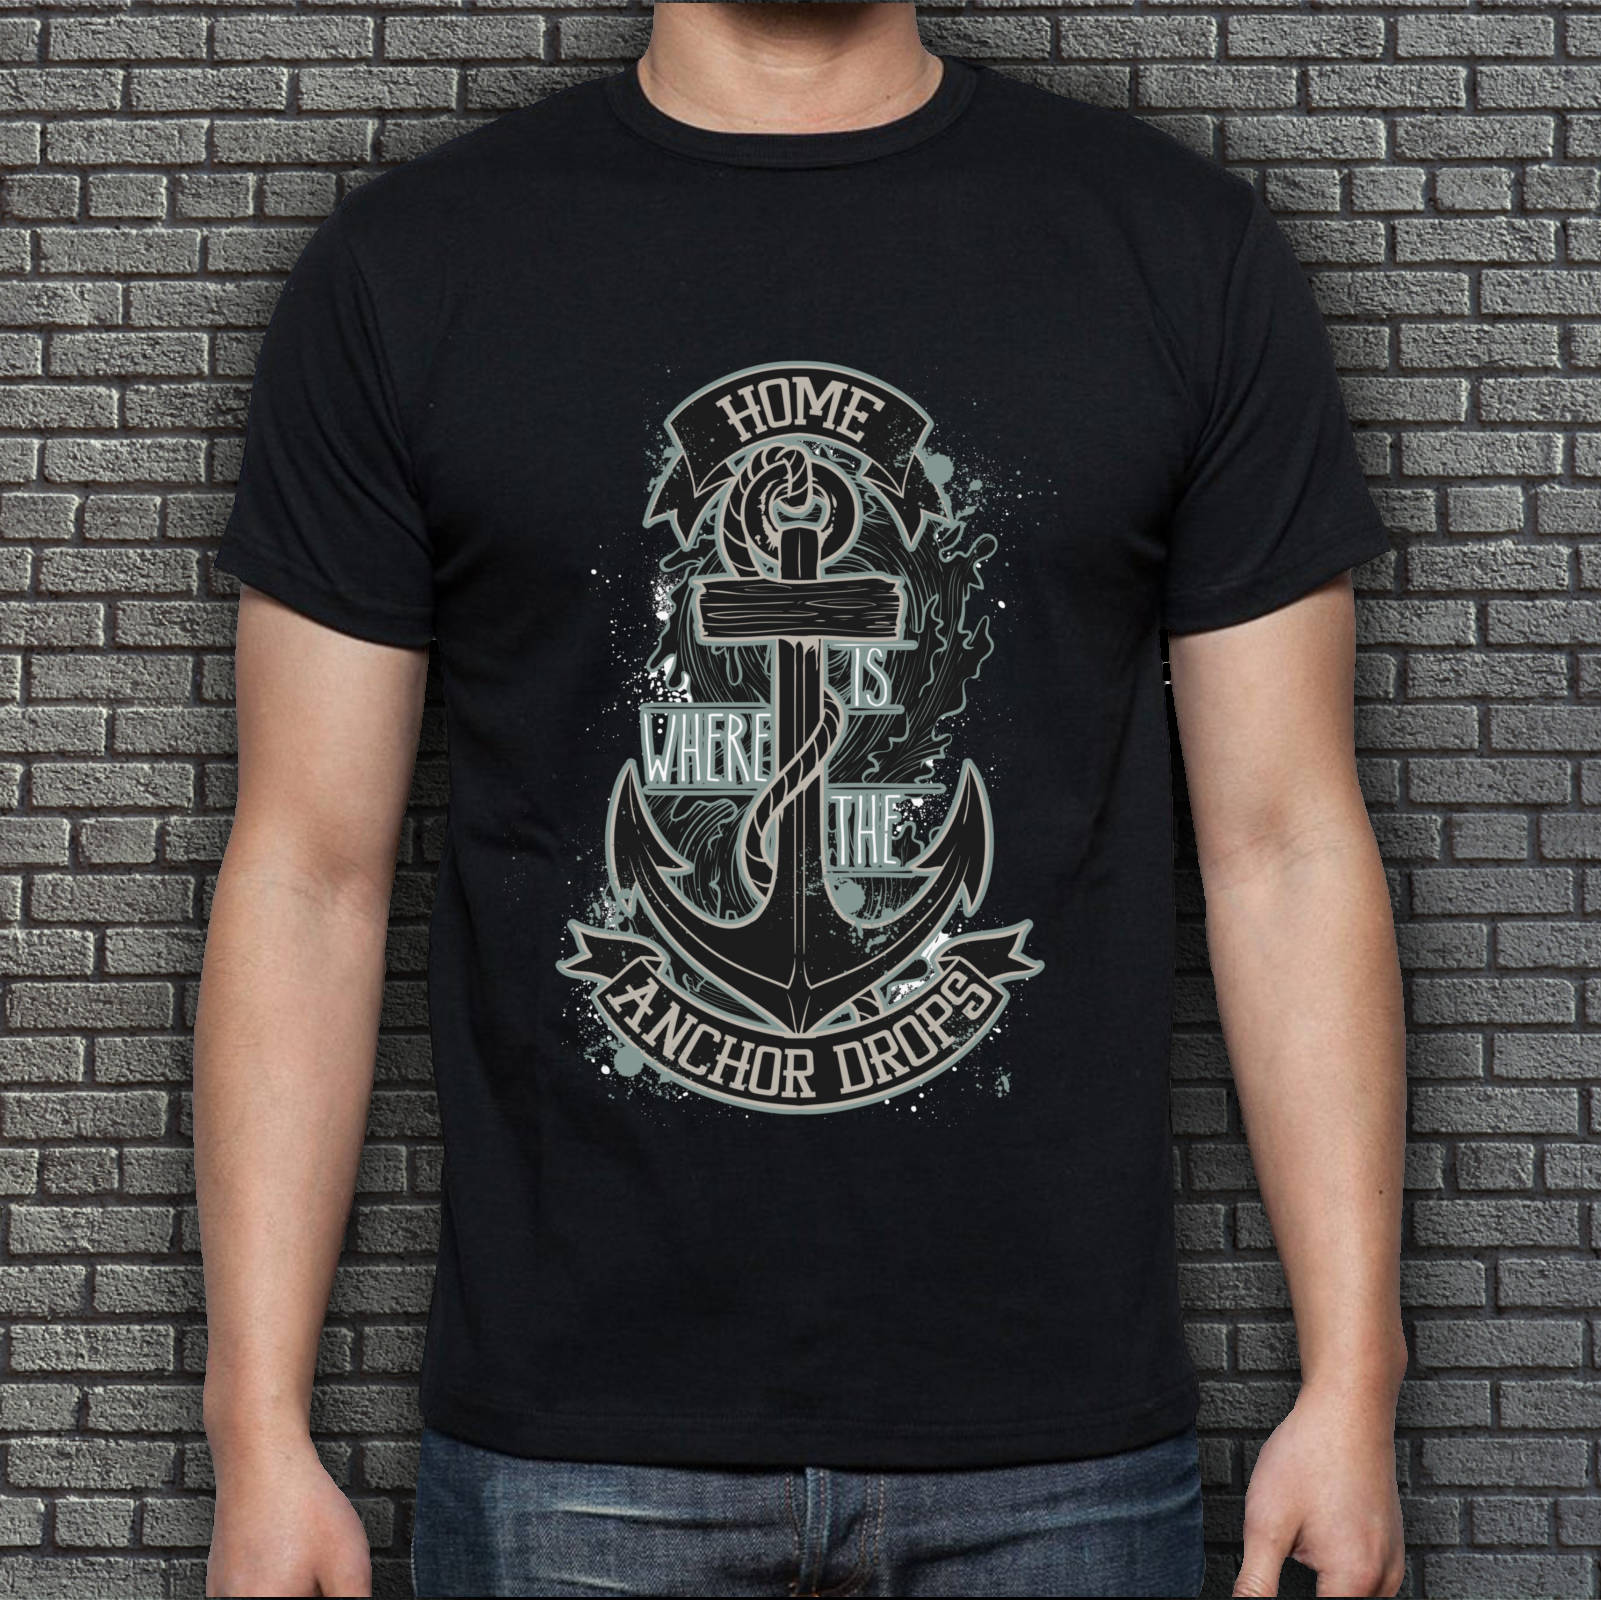 Men's Black Home is where the anchor drops T-shirt